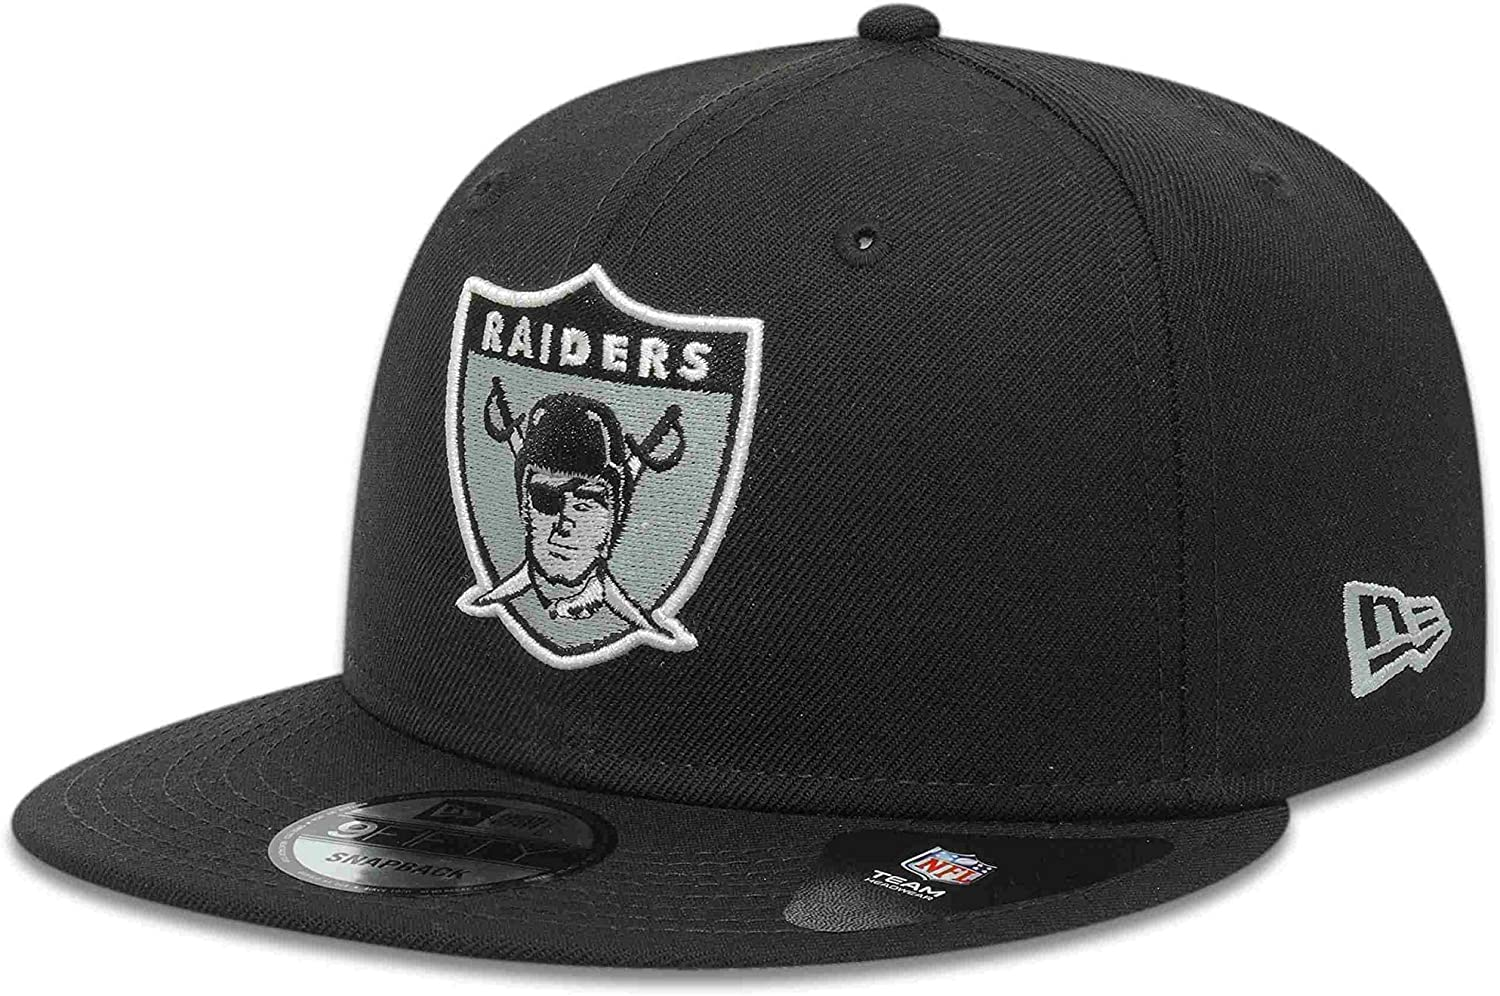 New ERA NFL Oakland Raiders 950 Cap Limited Edition Black with White